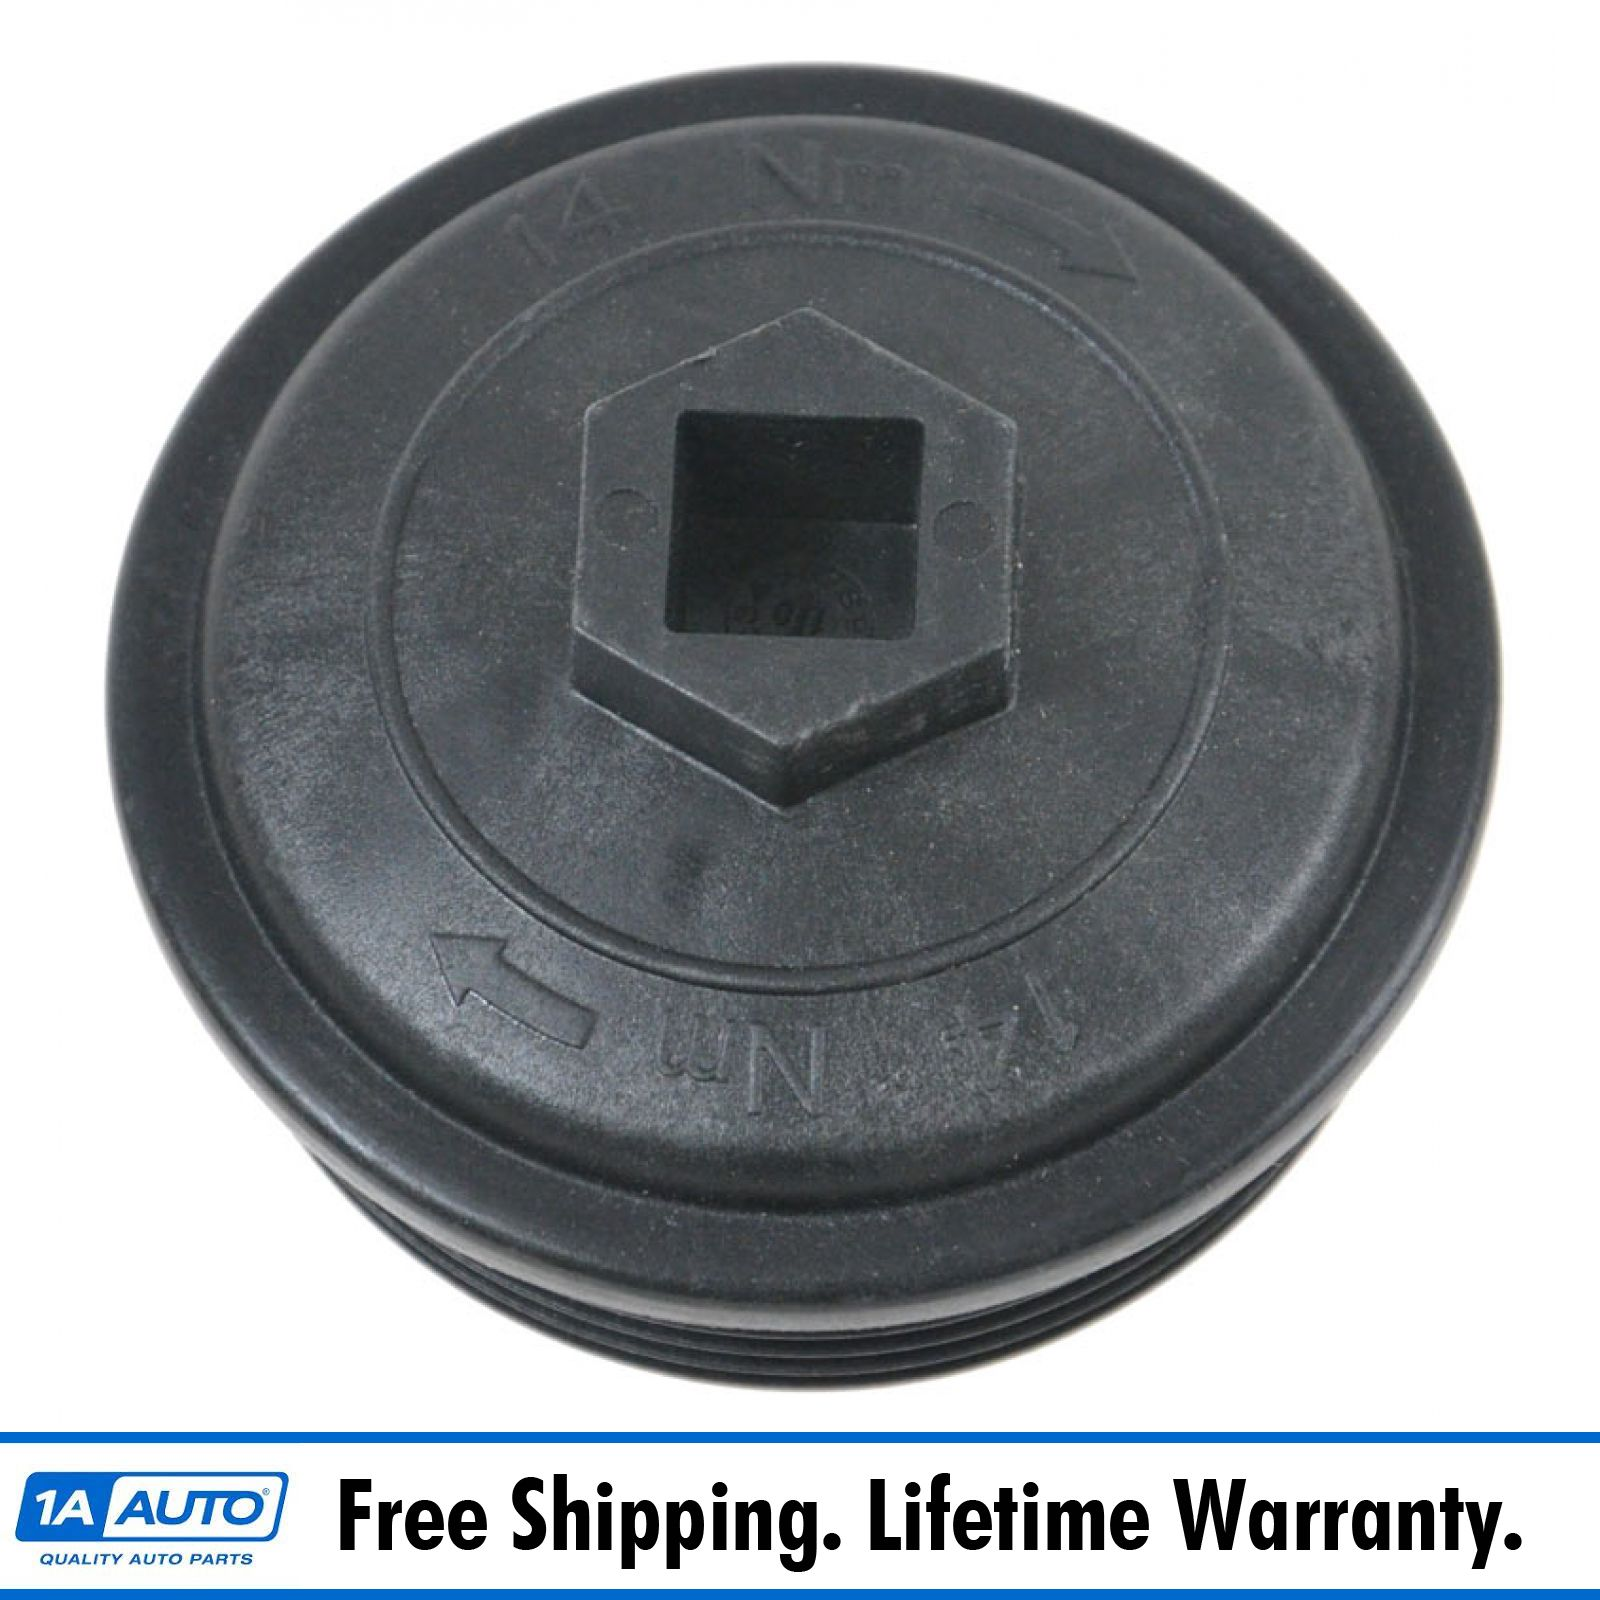 Dorman Fuel Filter Cap Cover for ford F250 F350 F450 F550 Excursion 6.0L  Diesel